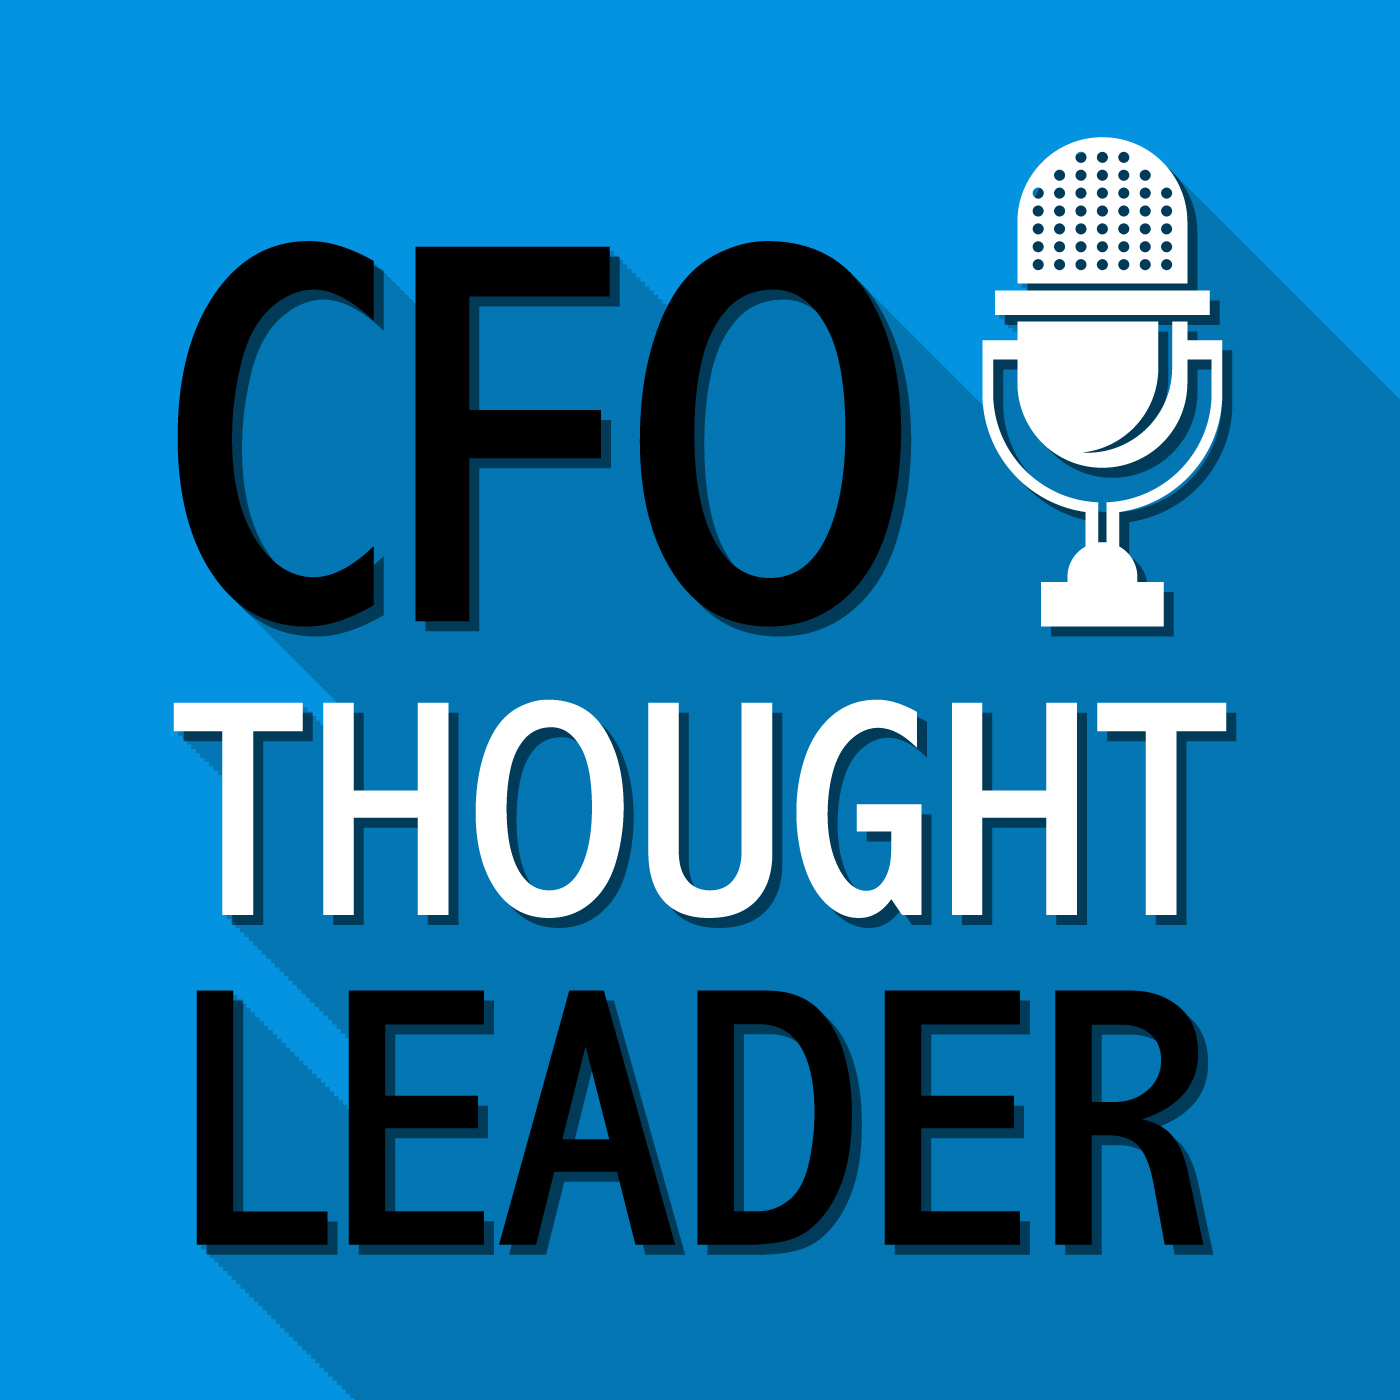 Thought Leader: CFO Thought Leader Honored For Excellence In Financial